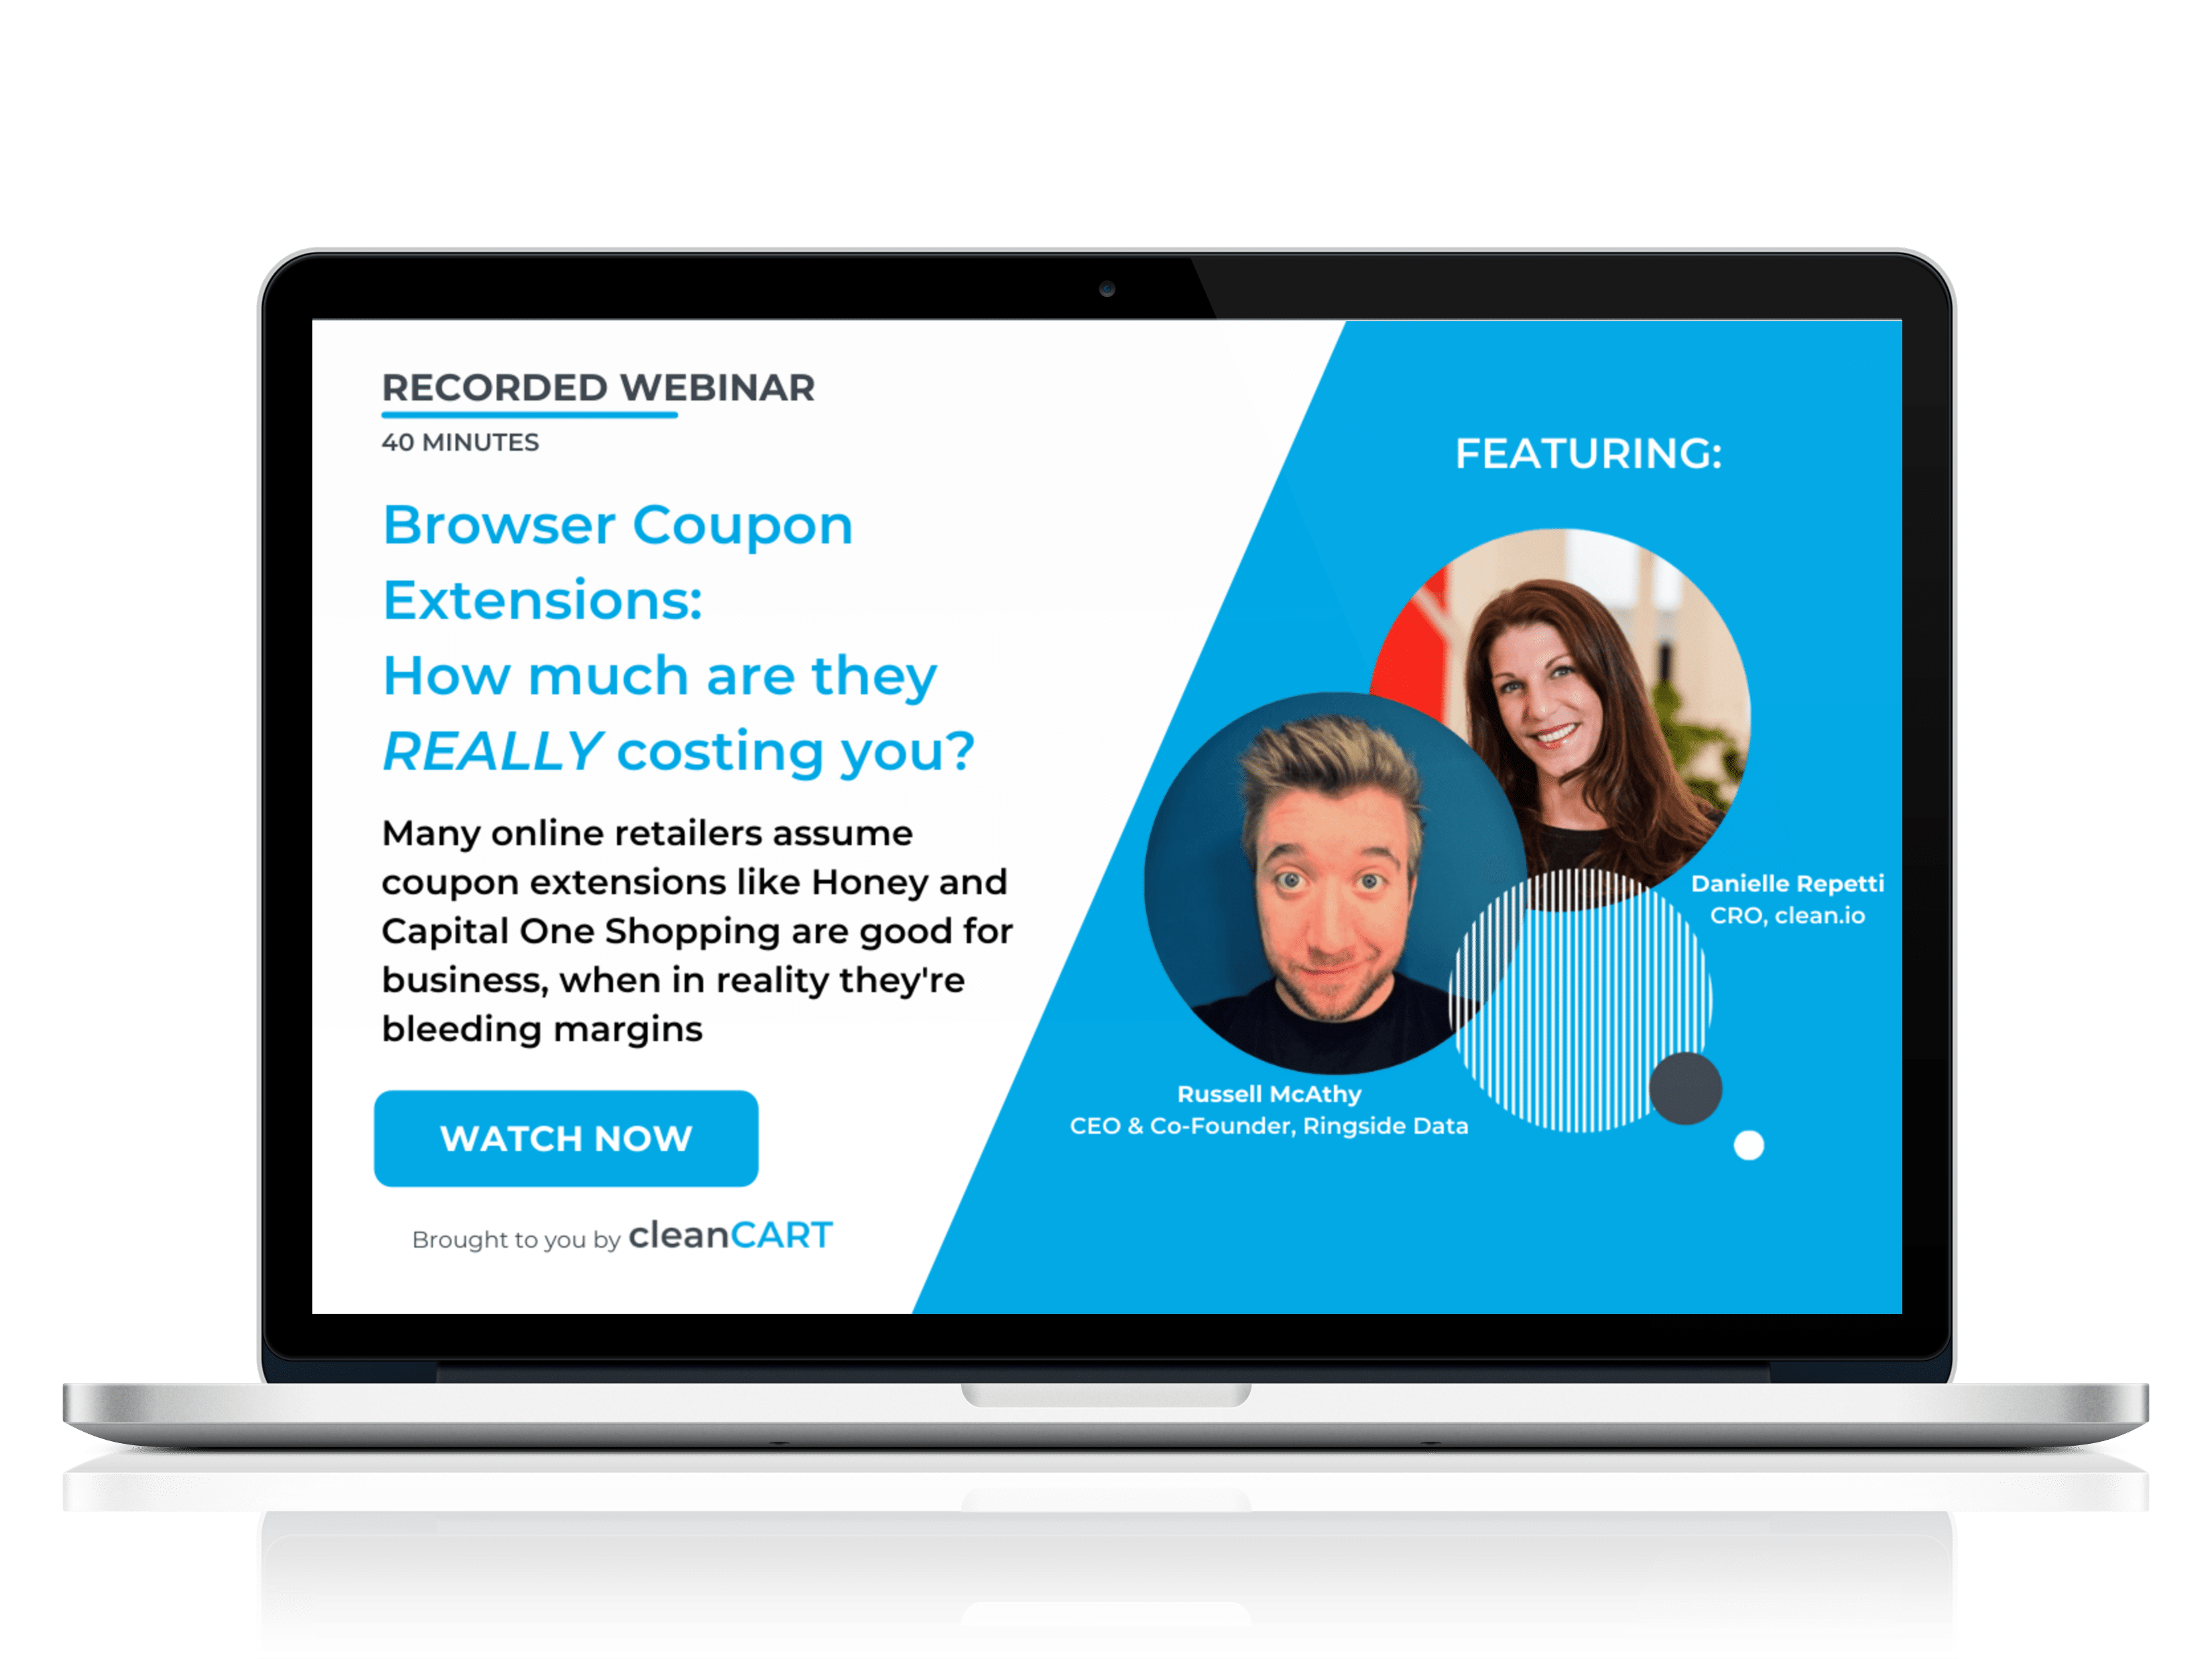 Browser Coupon Extensions: How much are they REALLY costing you?